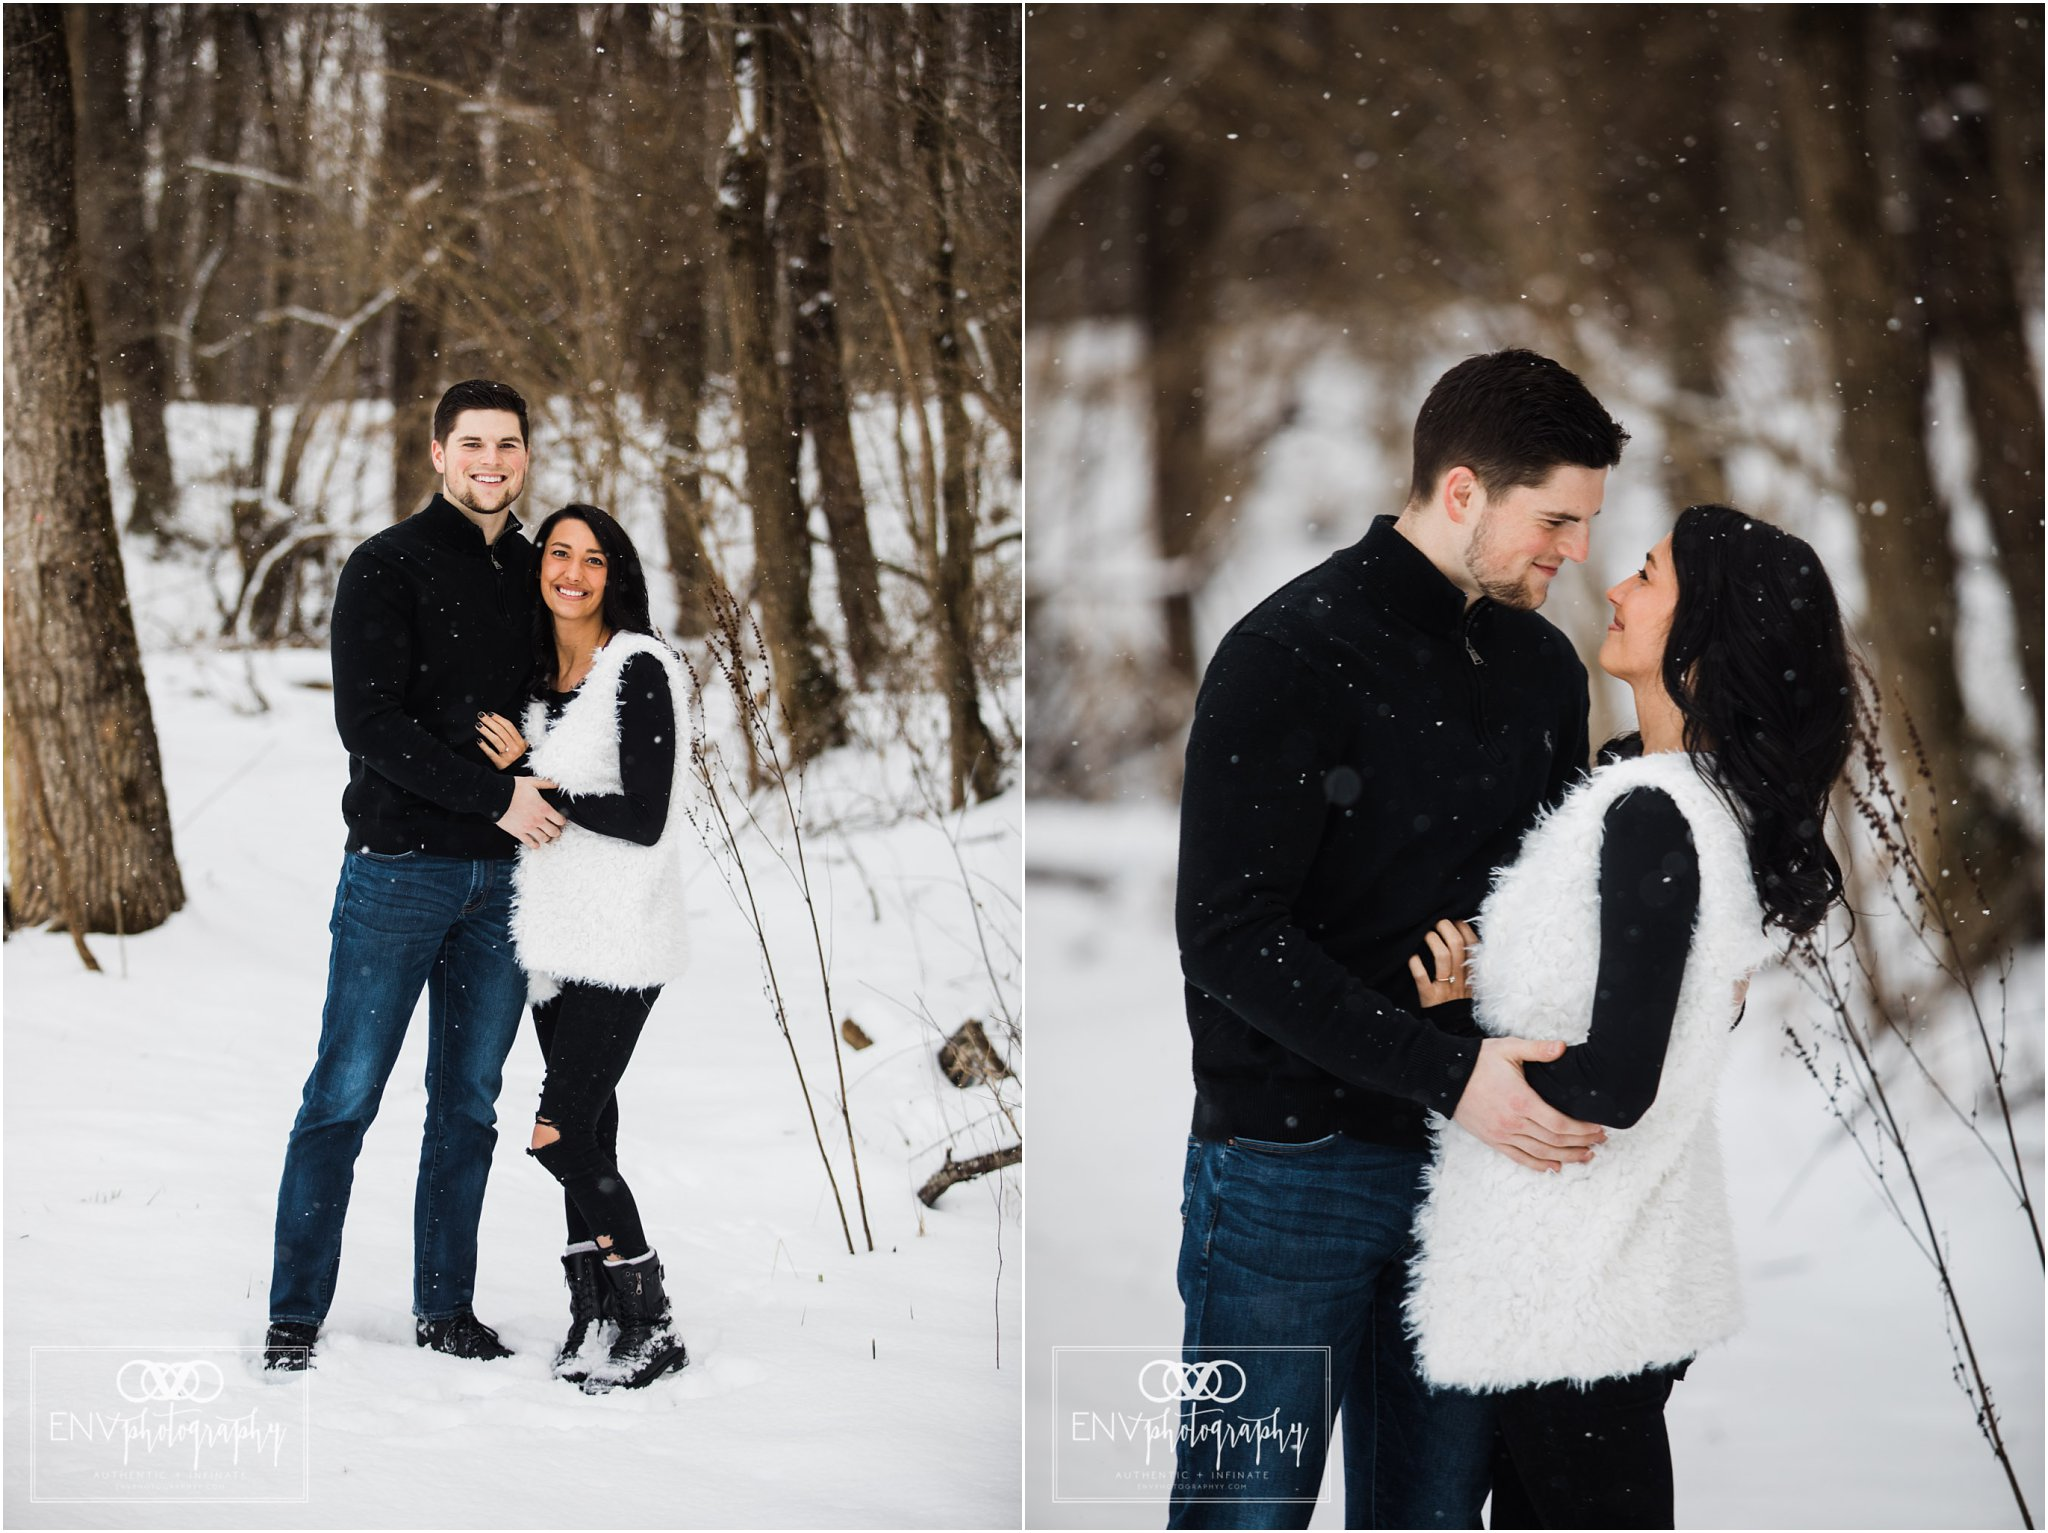 columbus ohio mount vernon ohio winter snowy family engagement photography (13).jpg